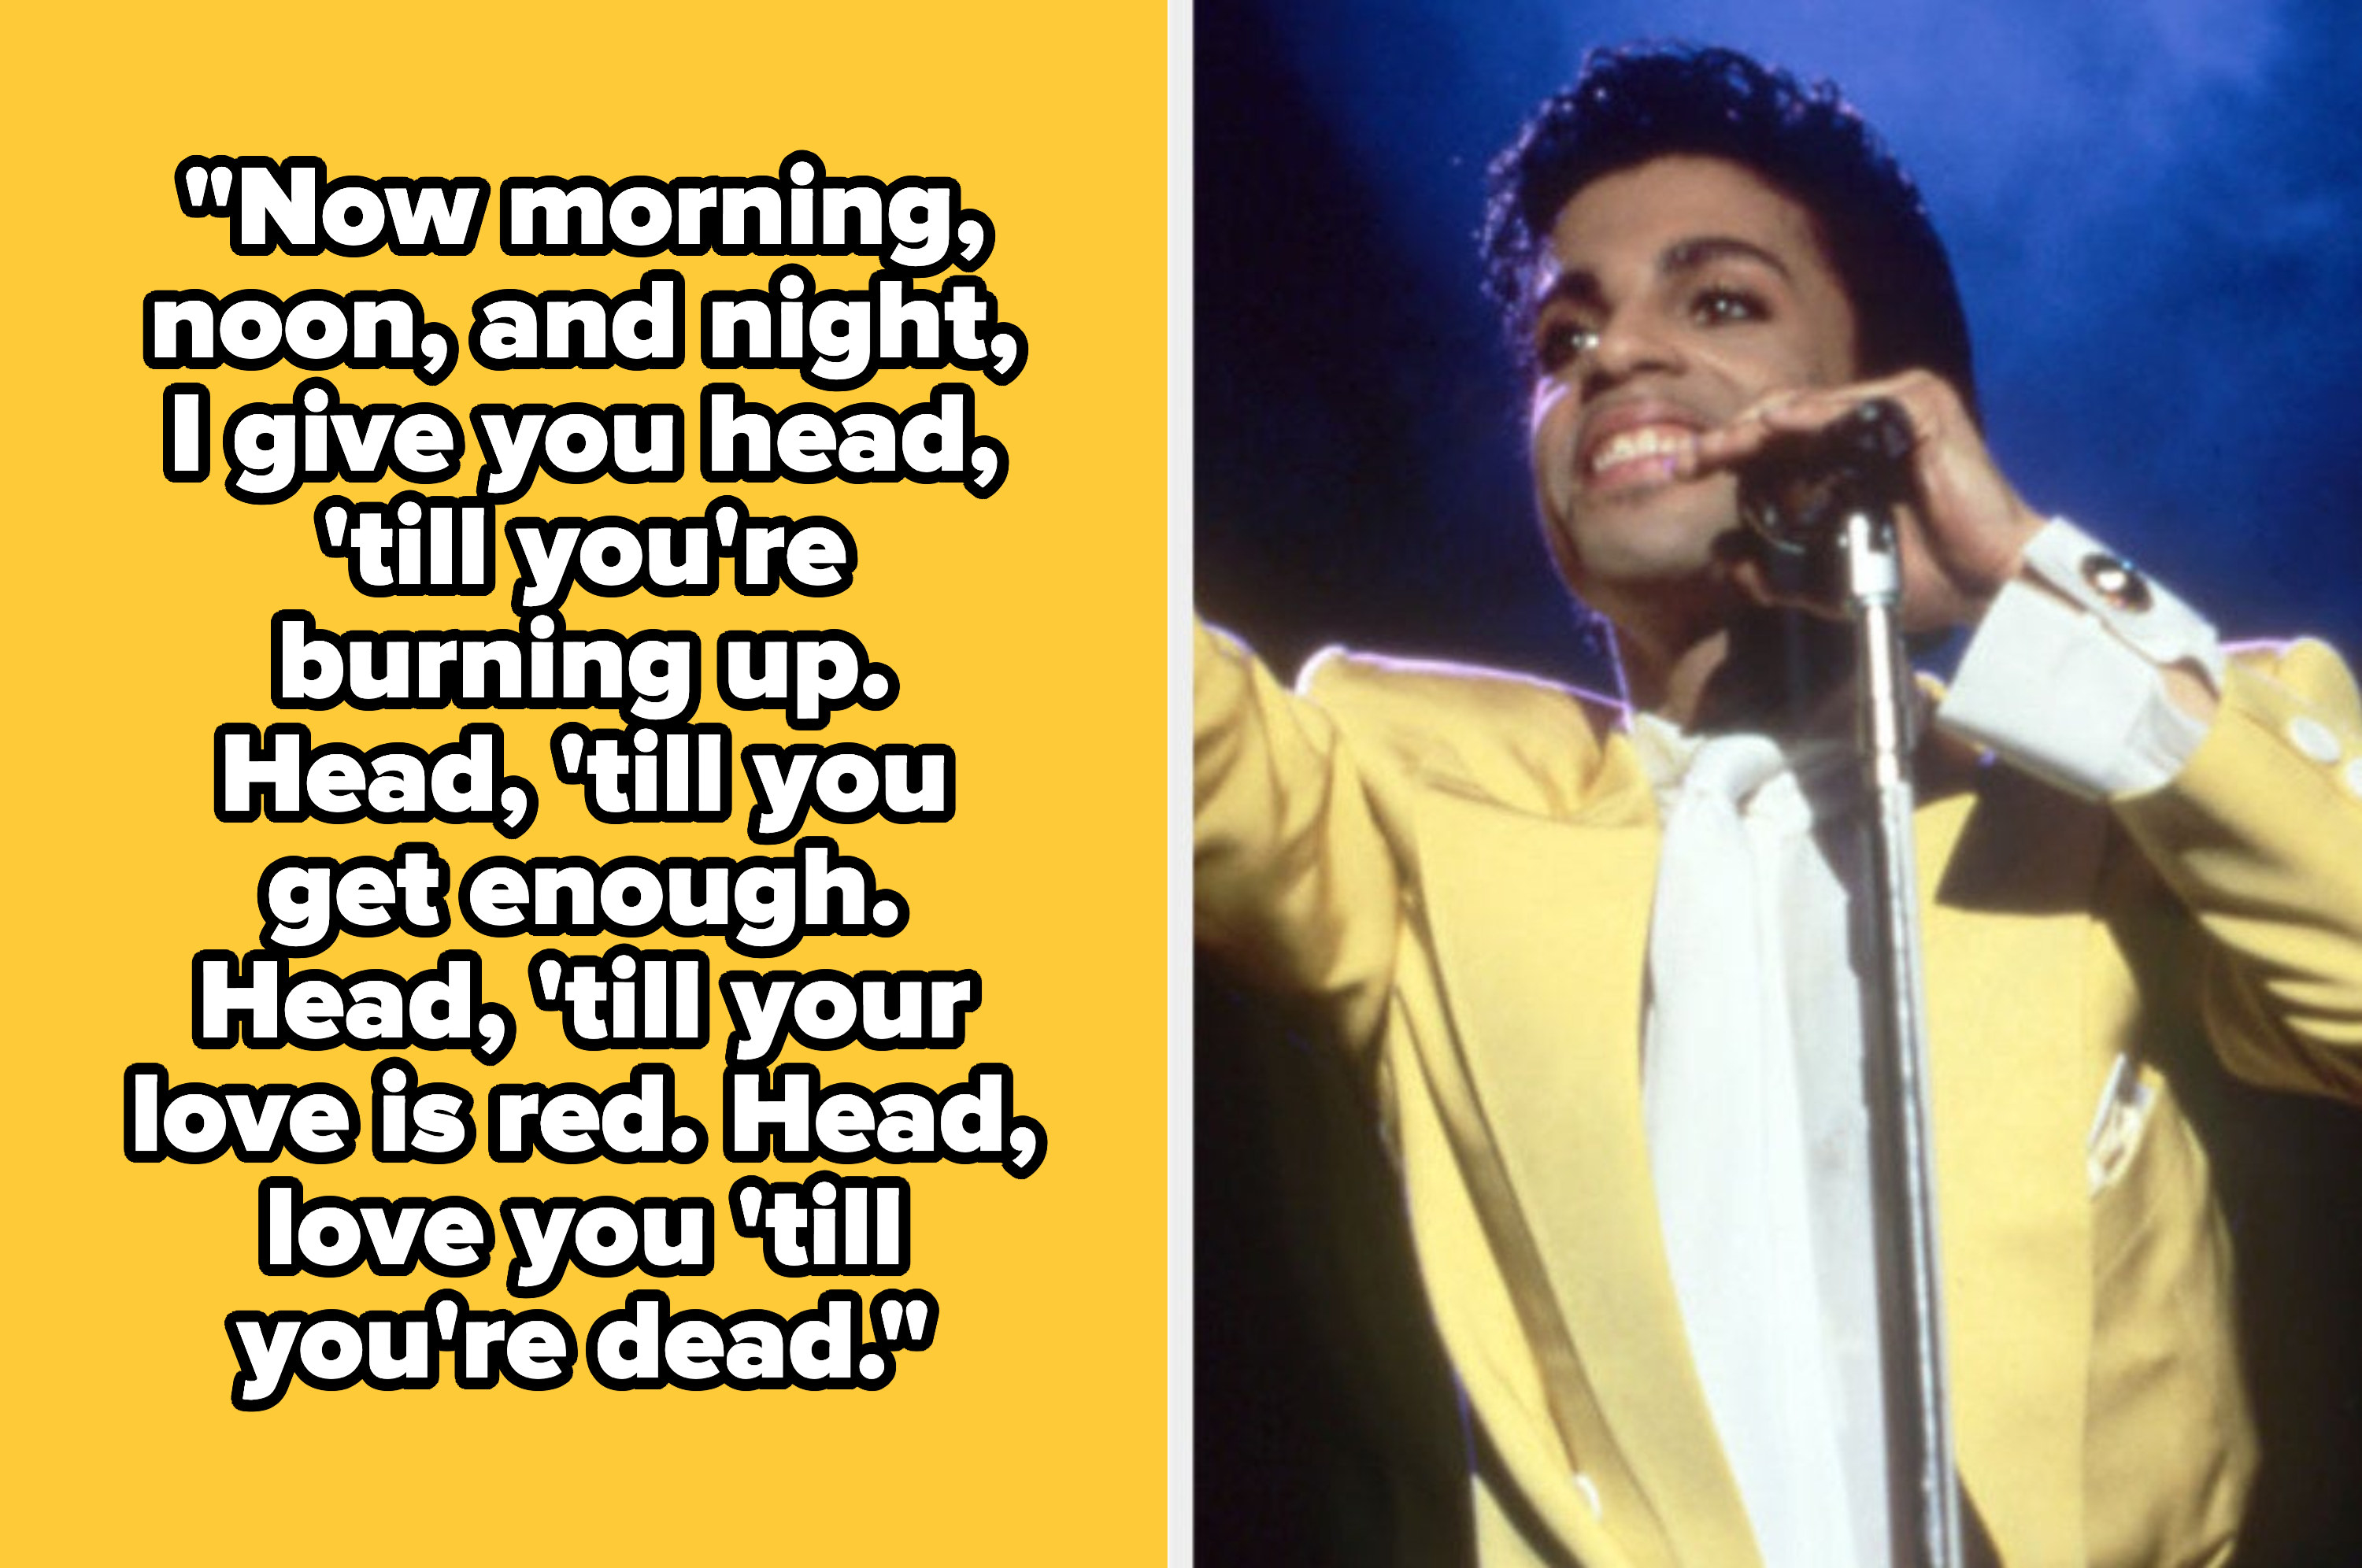 """Prince lyrics: """"Now morning, noon, and night, I give you head, till you're burning up. Head, till you get enough. Head, till your love is red. Head, love you till you're dead."""""""